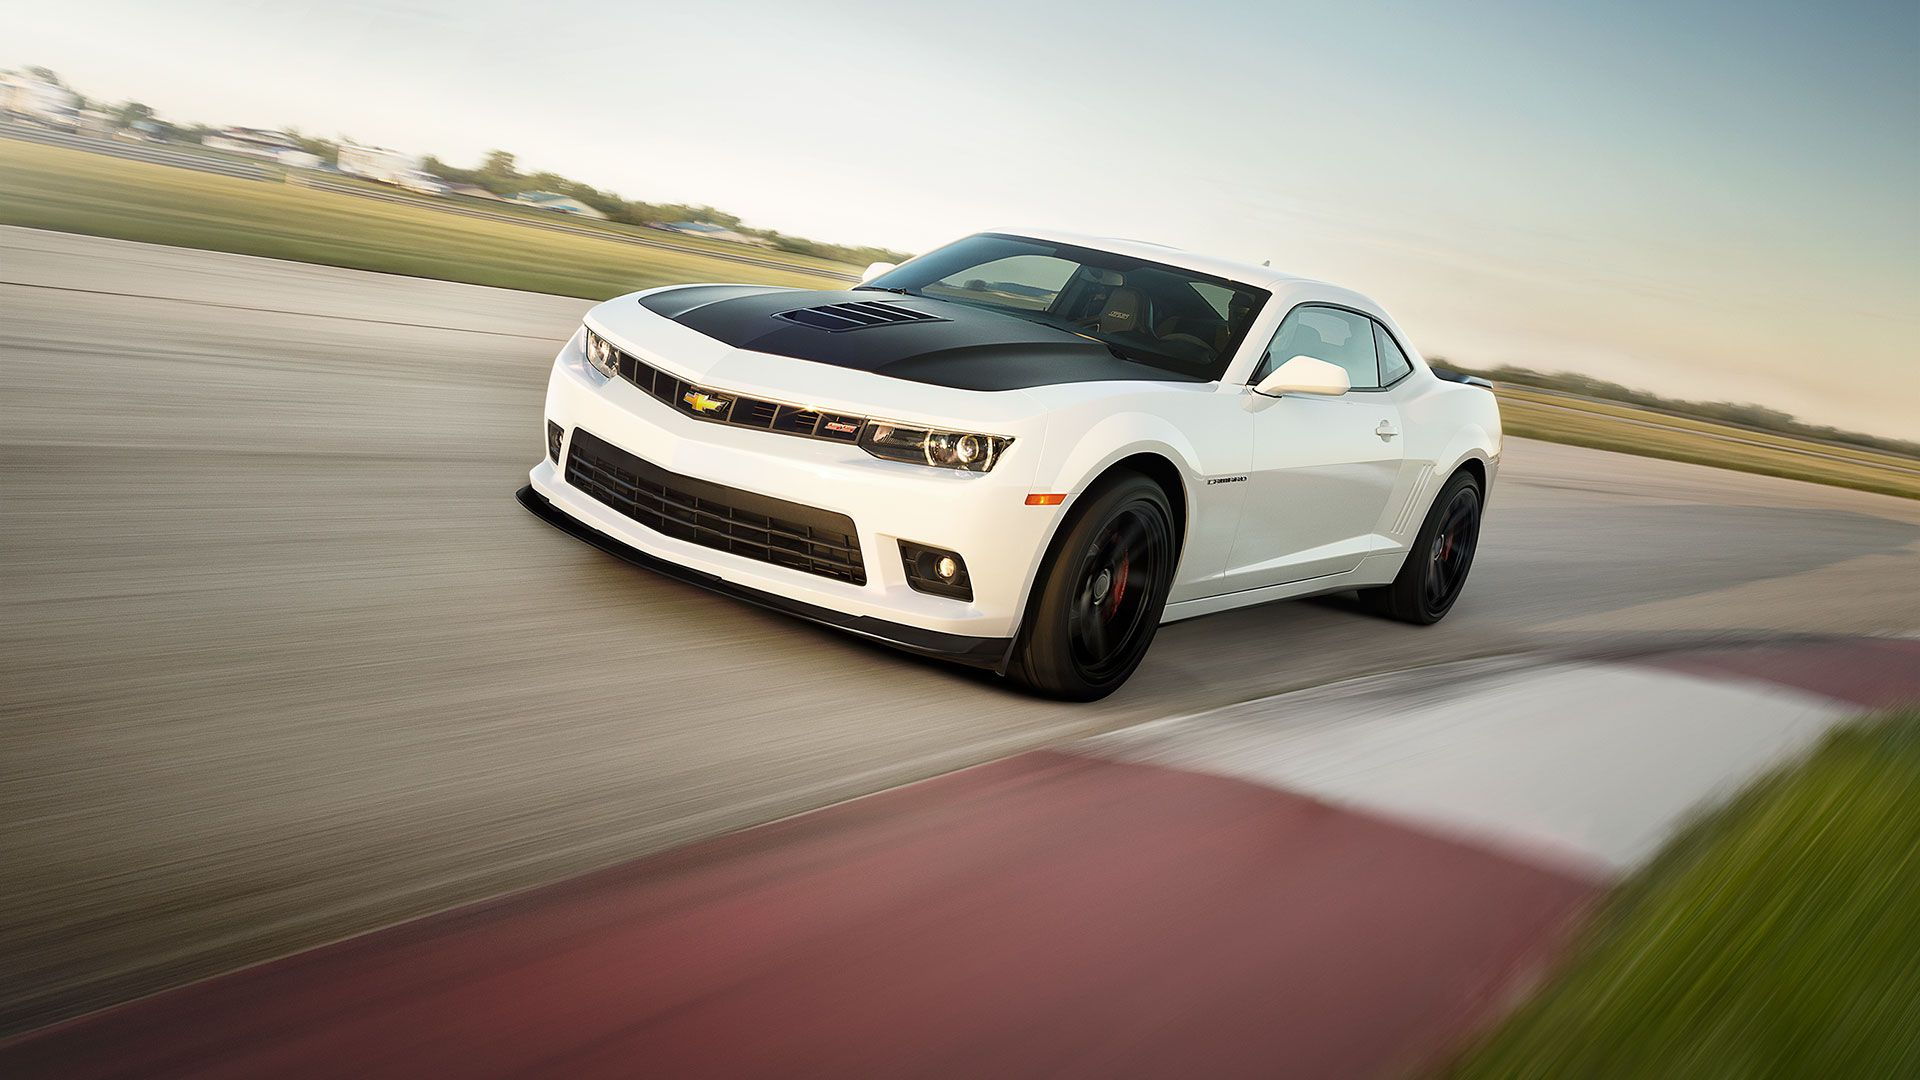 2015 Camaro 2SS 1LE package